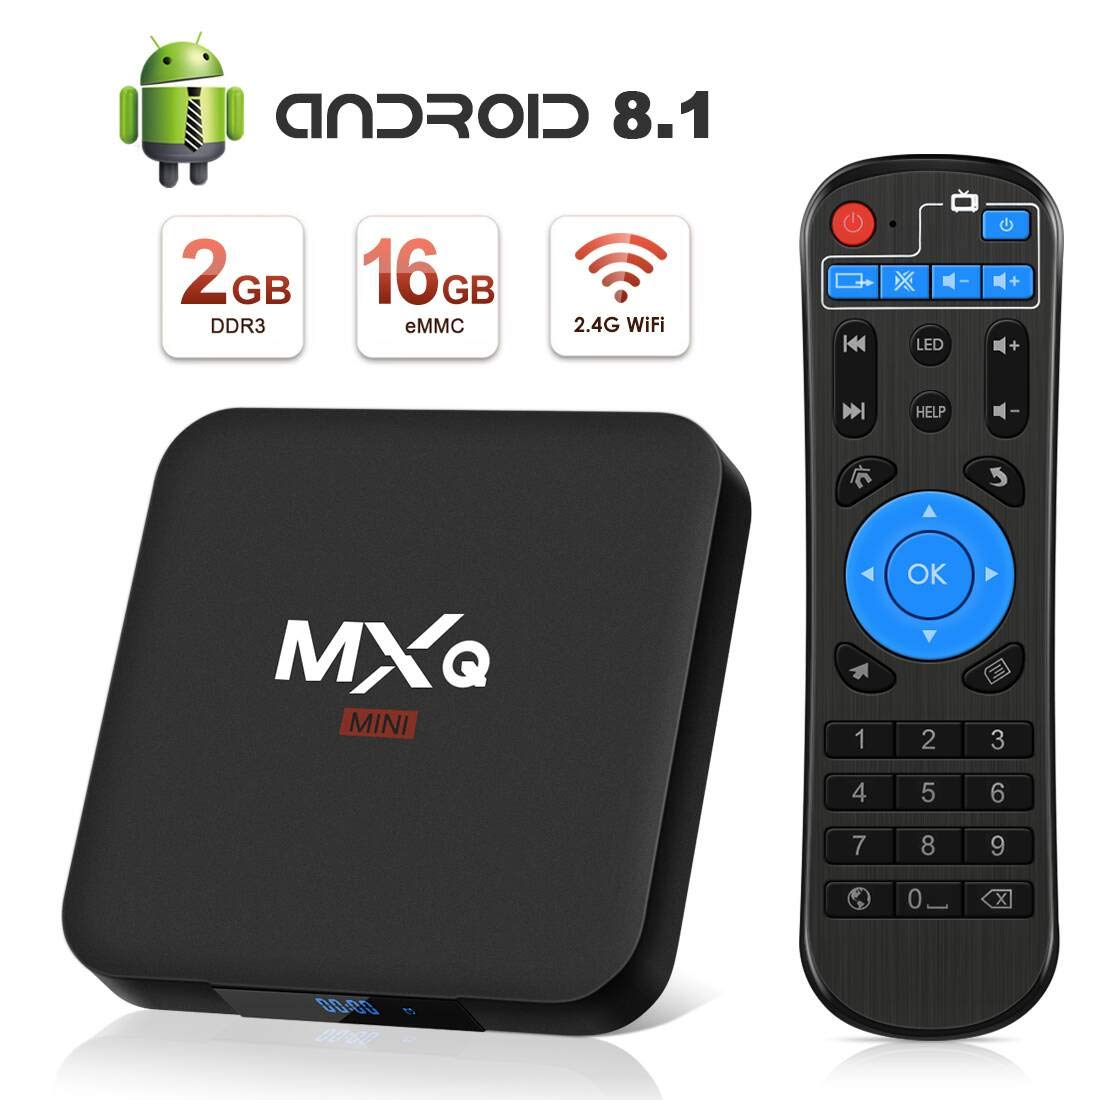 Android 8.1 TV Box, Superpow Smart TV Box Quad Core 2GB RAM+16GB ROM, 4K*2K UHD H.265, HDMI, USB*2, WiFi Media Player, Android Set-Top Box con Voice Remote Control: Amazon.es: Electrónica